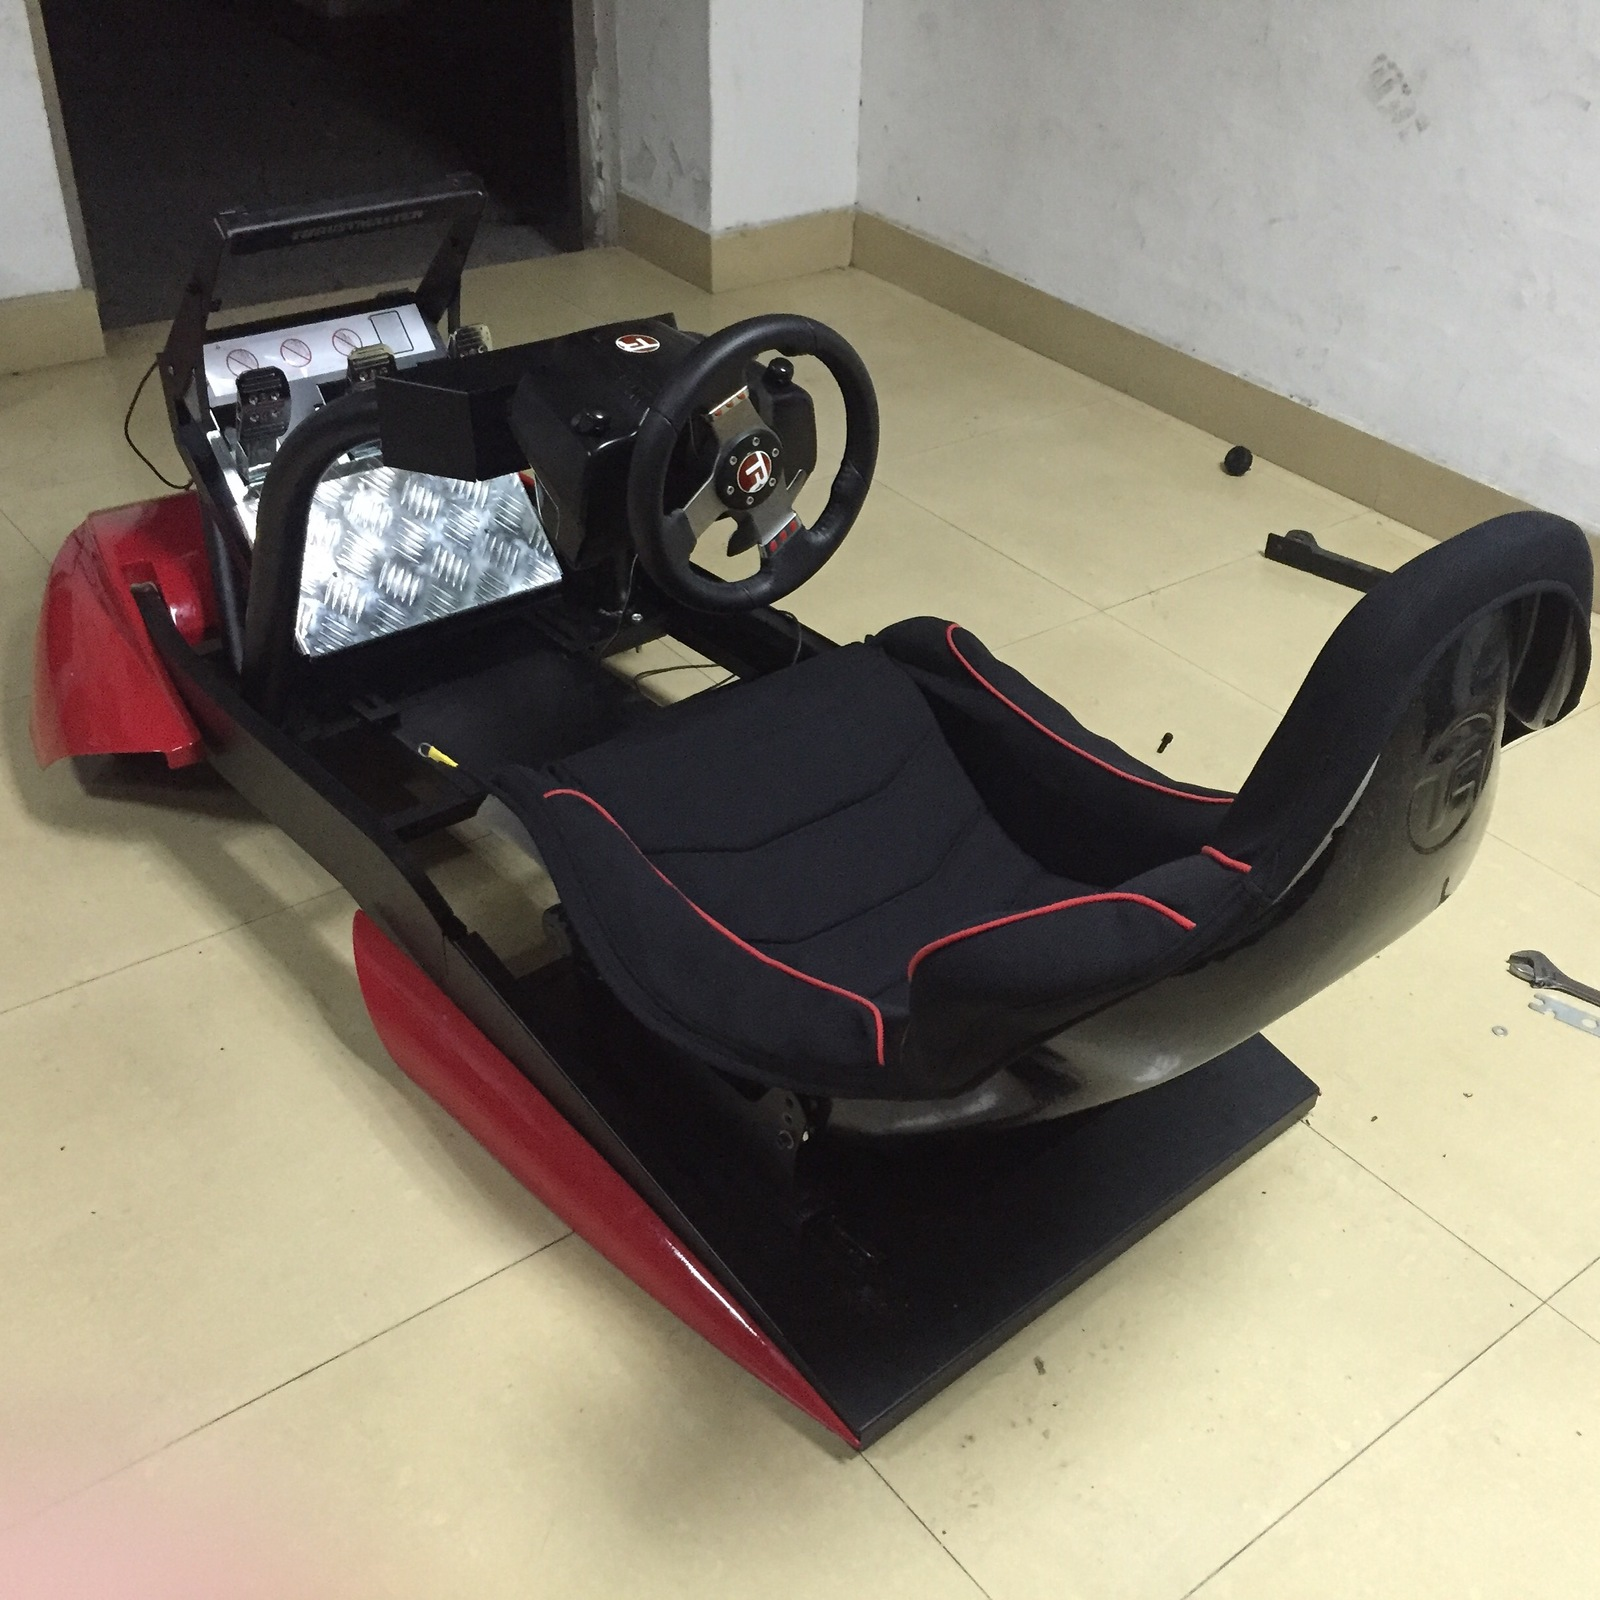 f1 racing chair wheelchair transport formula game simulator cockpit seat race